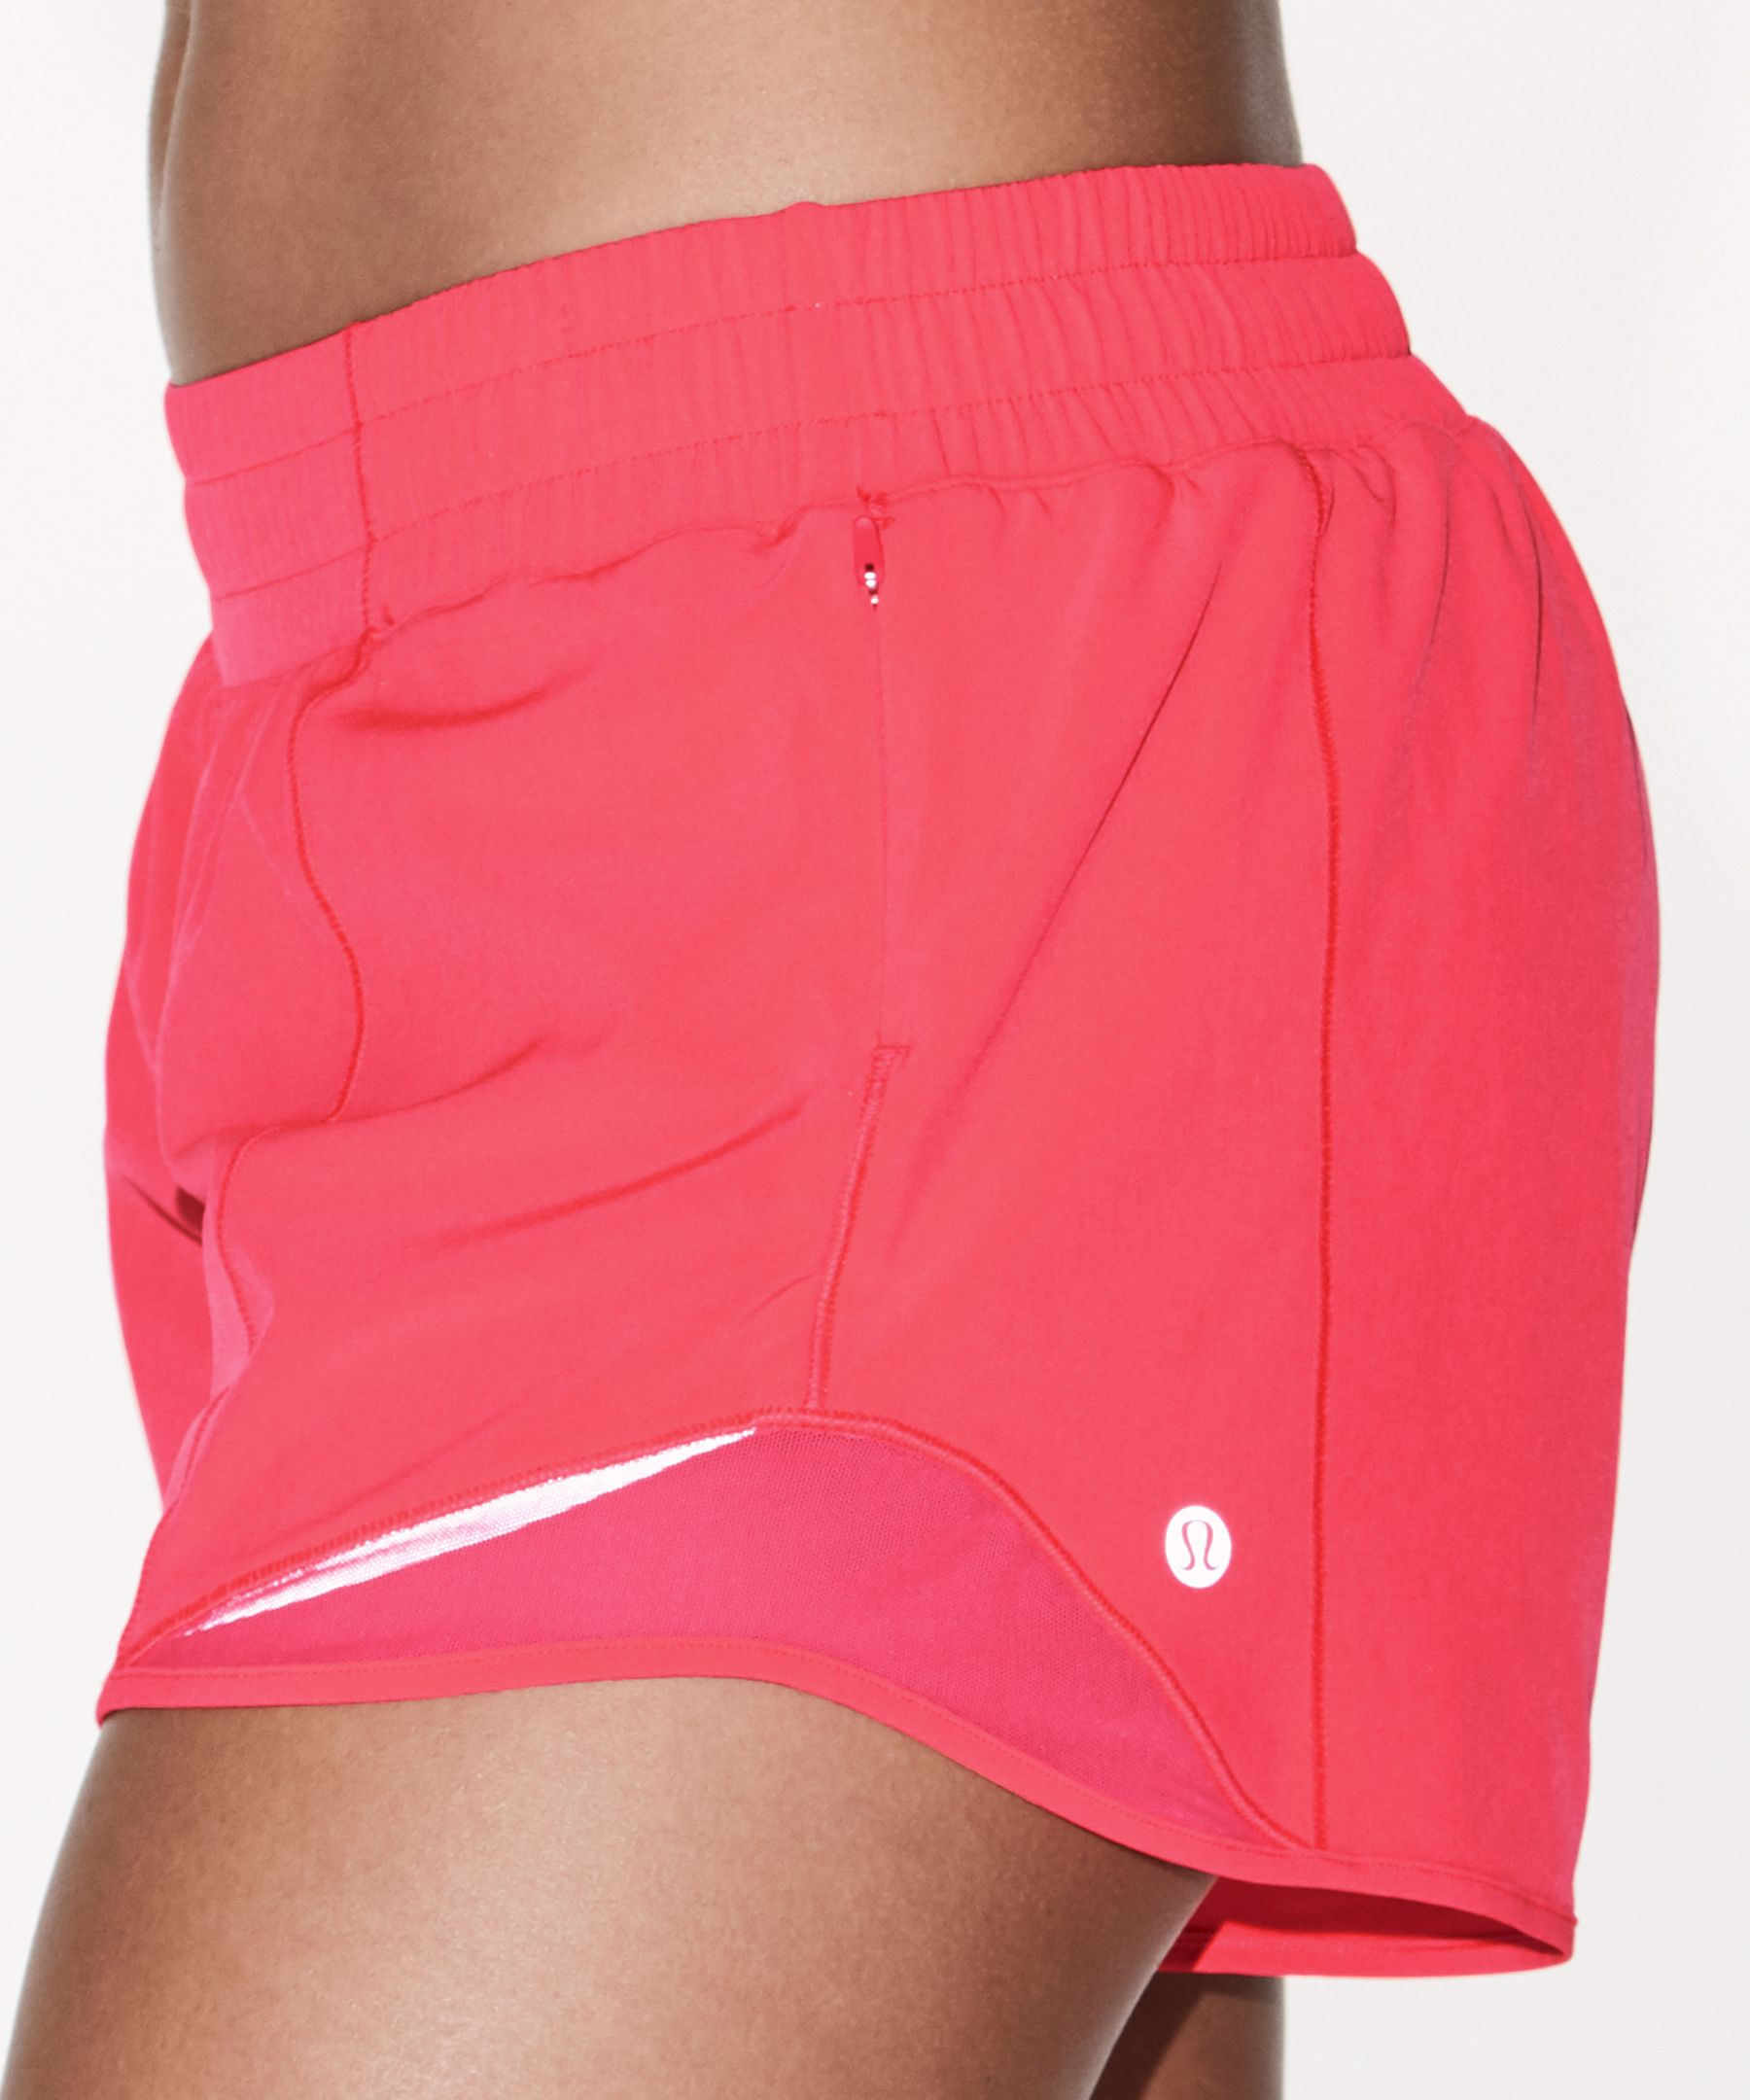 Hotty Hot Short Ii Long 4 Women S Shorts Lululemon